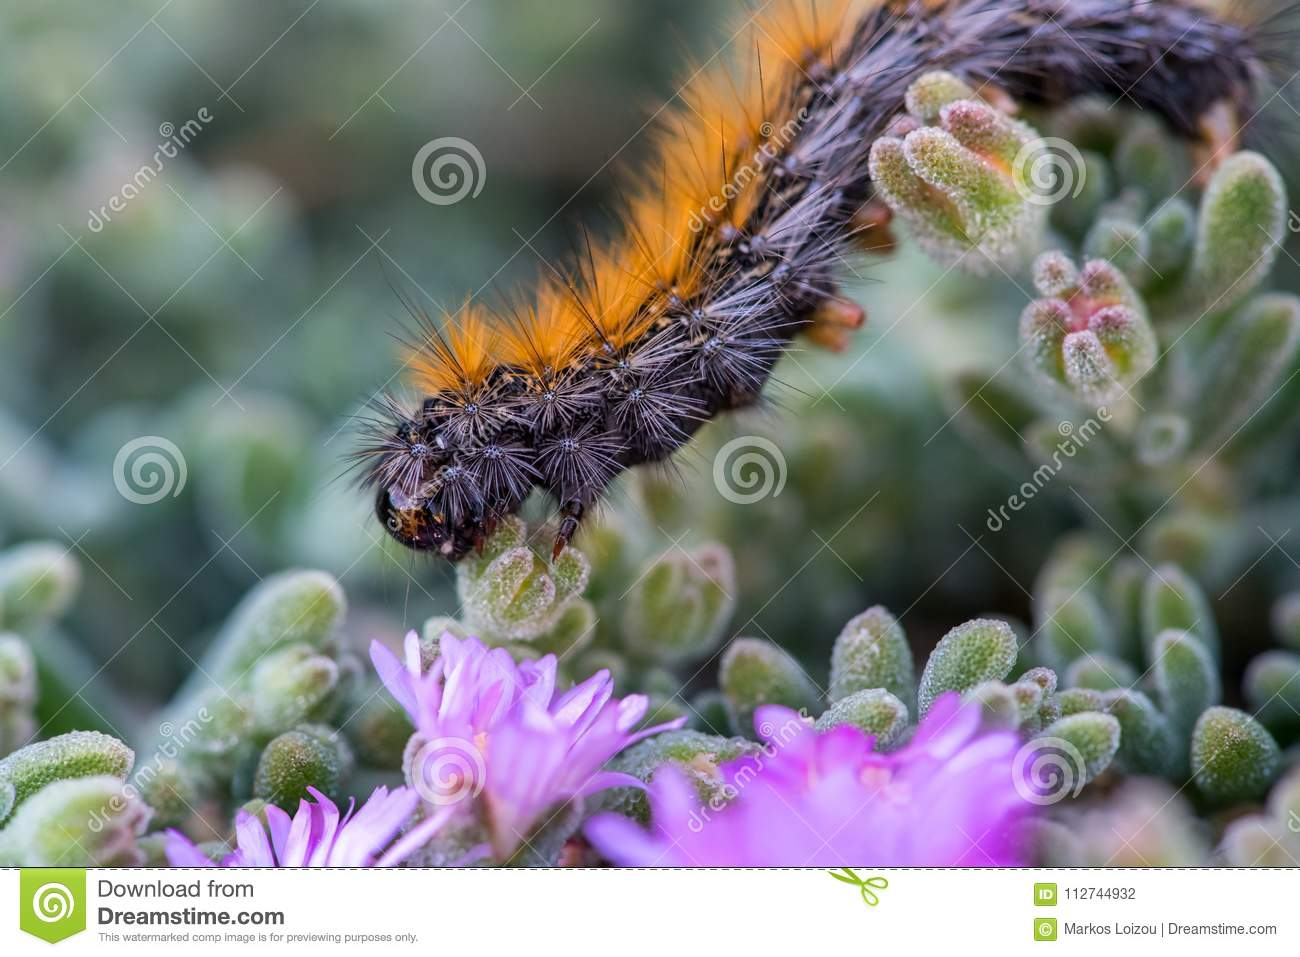 The endemic to Cyprus`March` Caterpillar marching on violet flowers